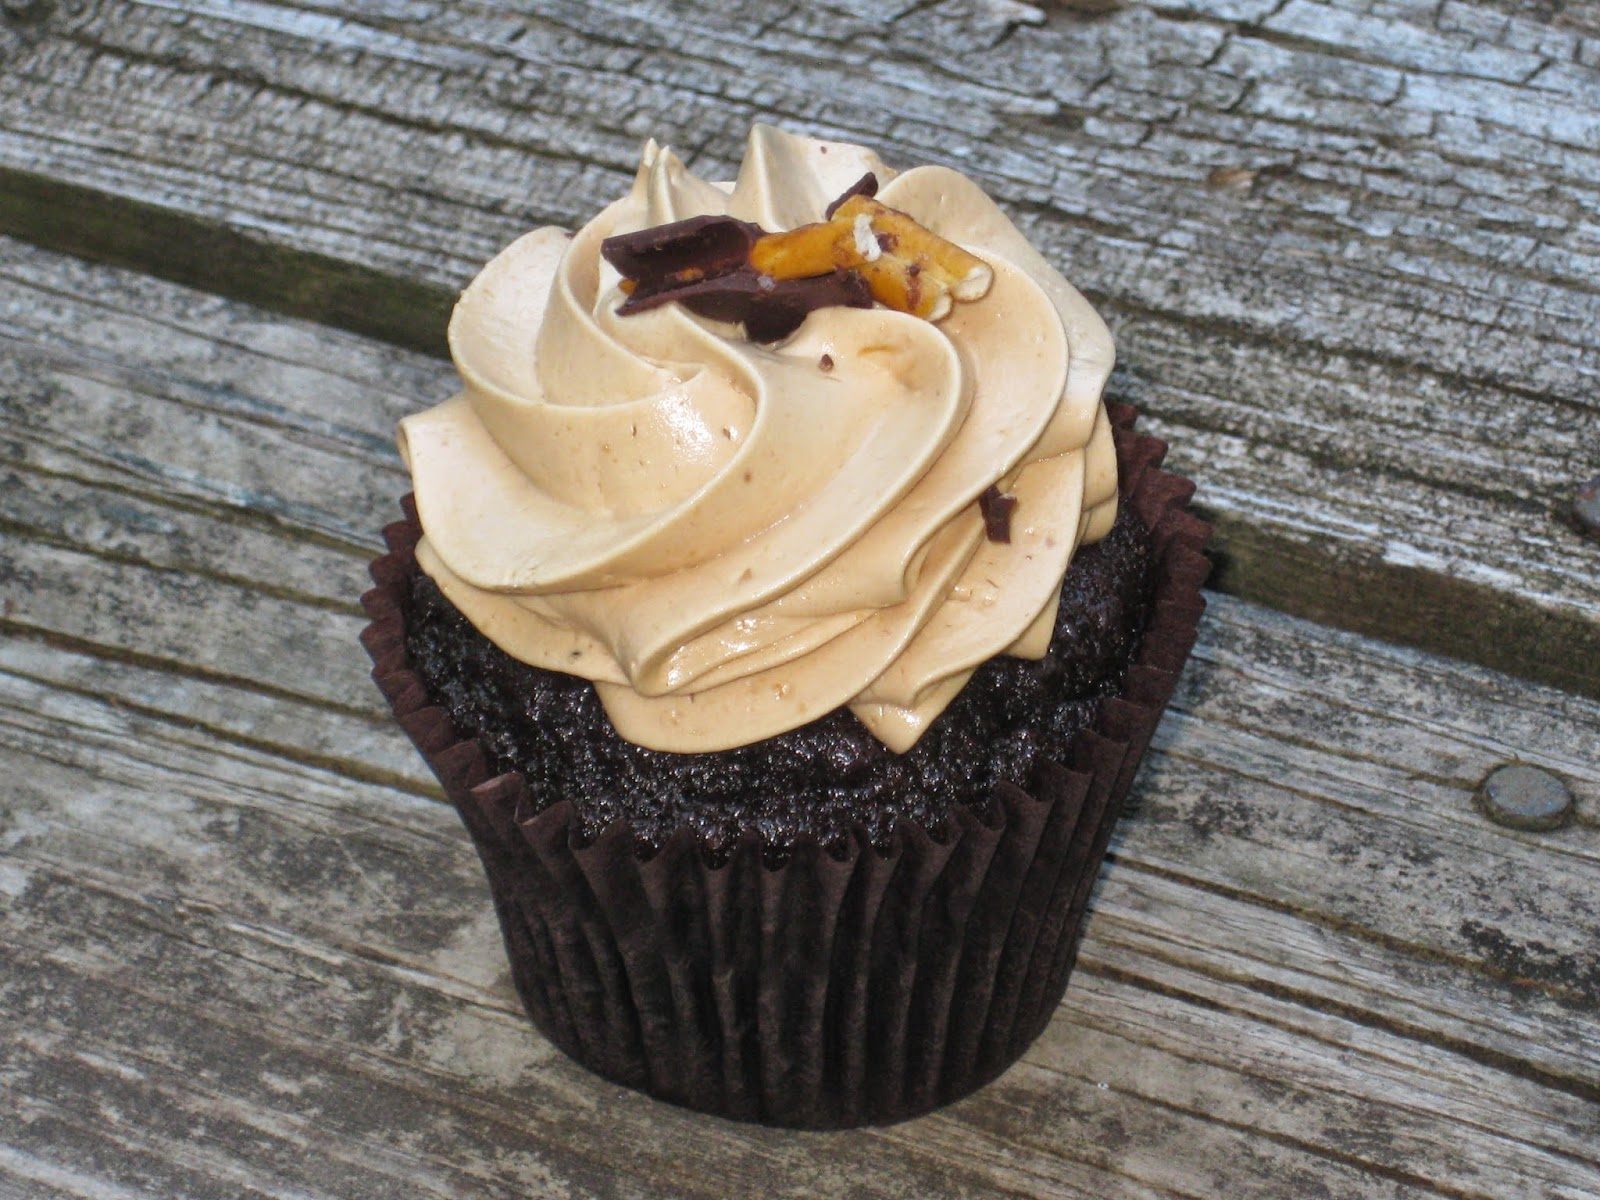 Salted Caramel Cupcake from Flavory Cupcakery